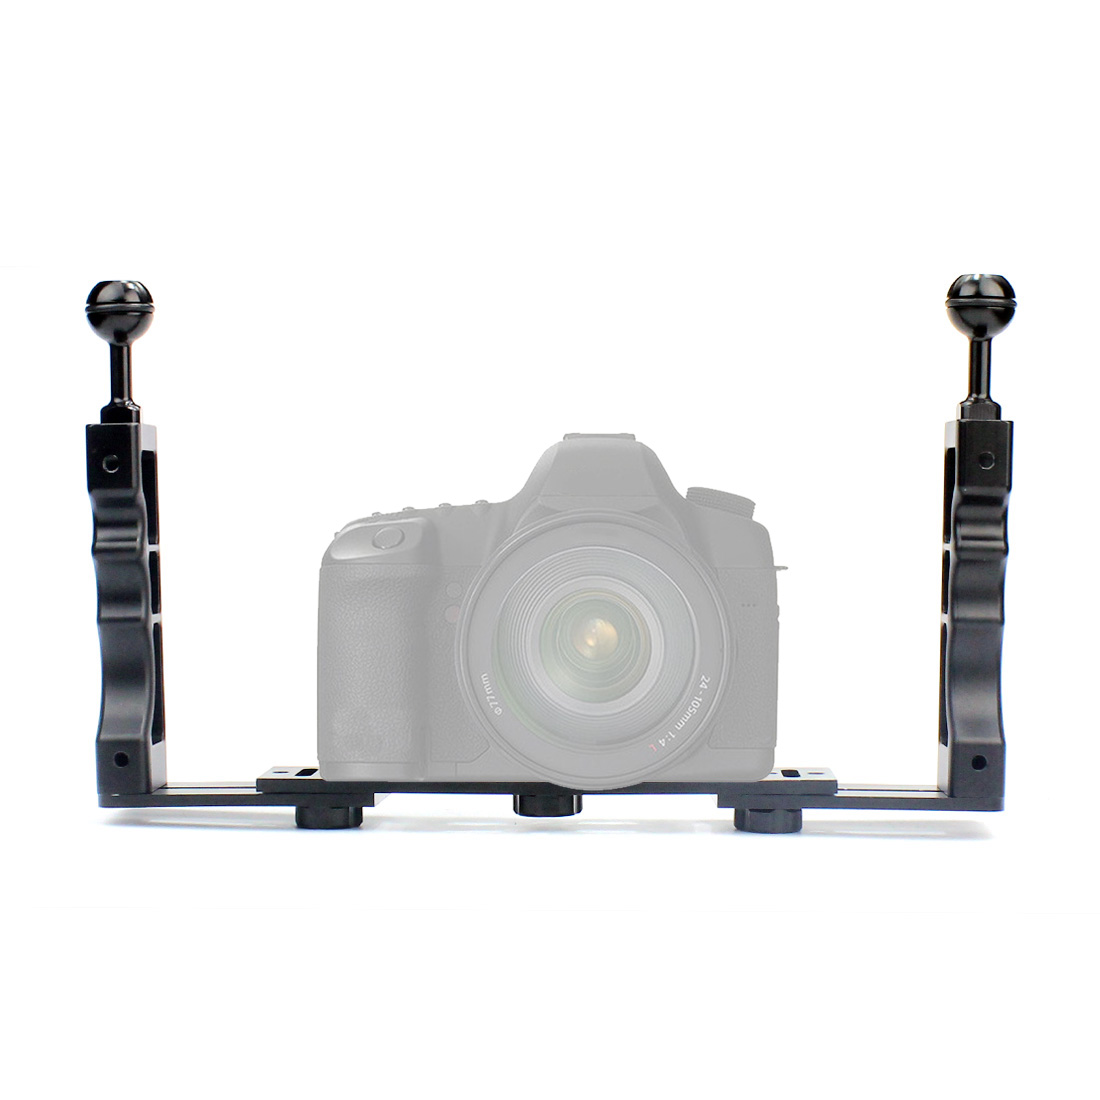 For Gopro Action Camera Holder Double Grip DiveAluminum Alloy Underwater Tray Housings Arm Accessories все цены